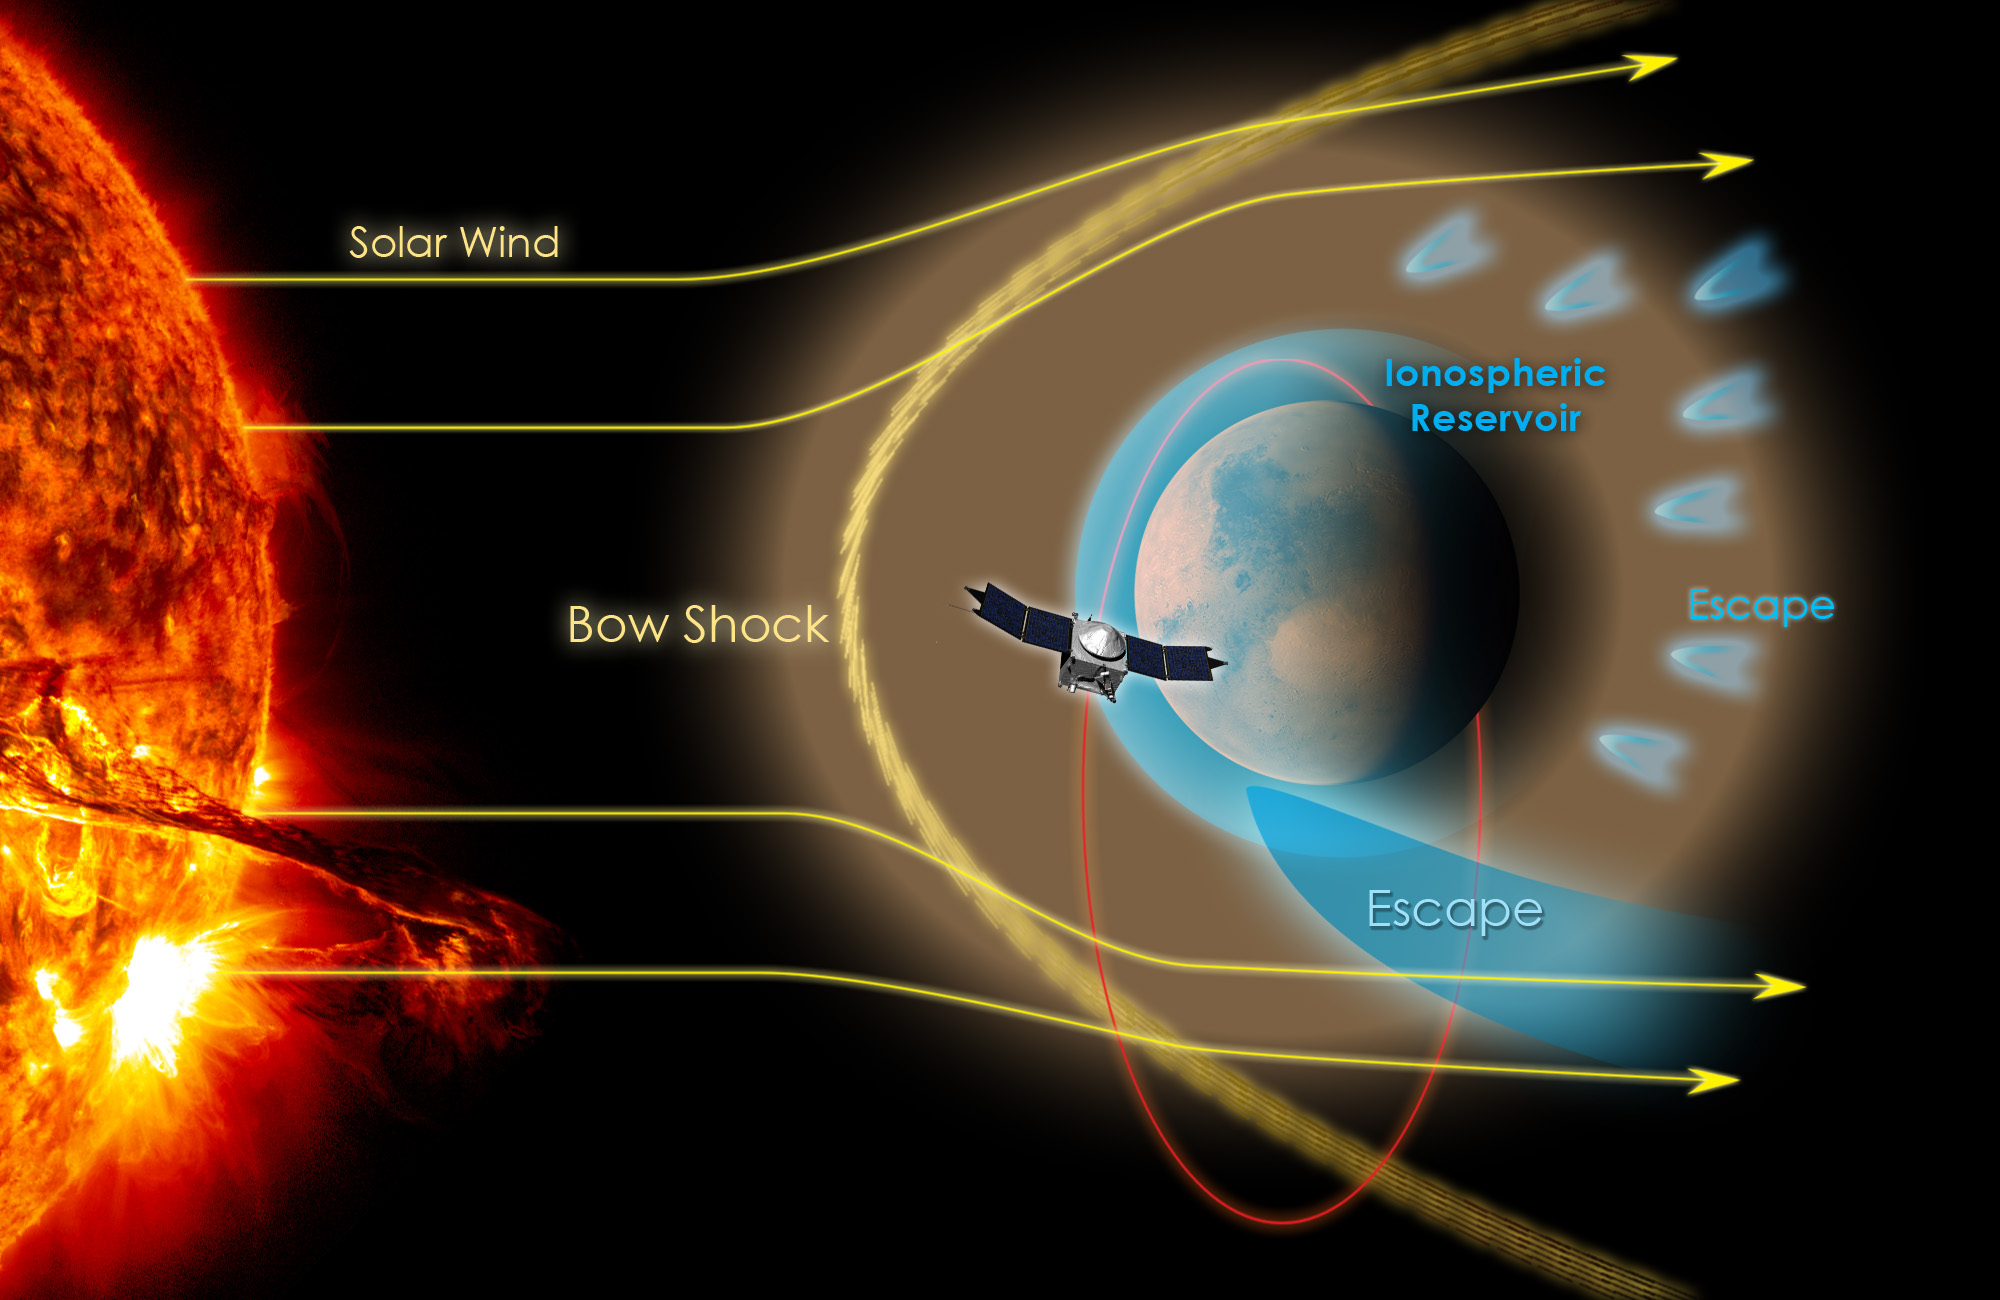 Earth Has A Powerful Nuclear Powered Magnetic Shield. Mars' Shield Was Too Weak. The Solar Wind Tore the Martian Atmosphere Away MCE By MCE.